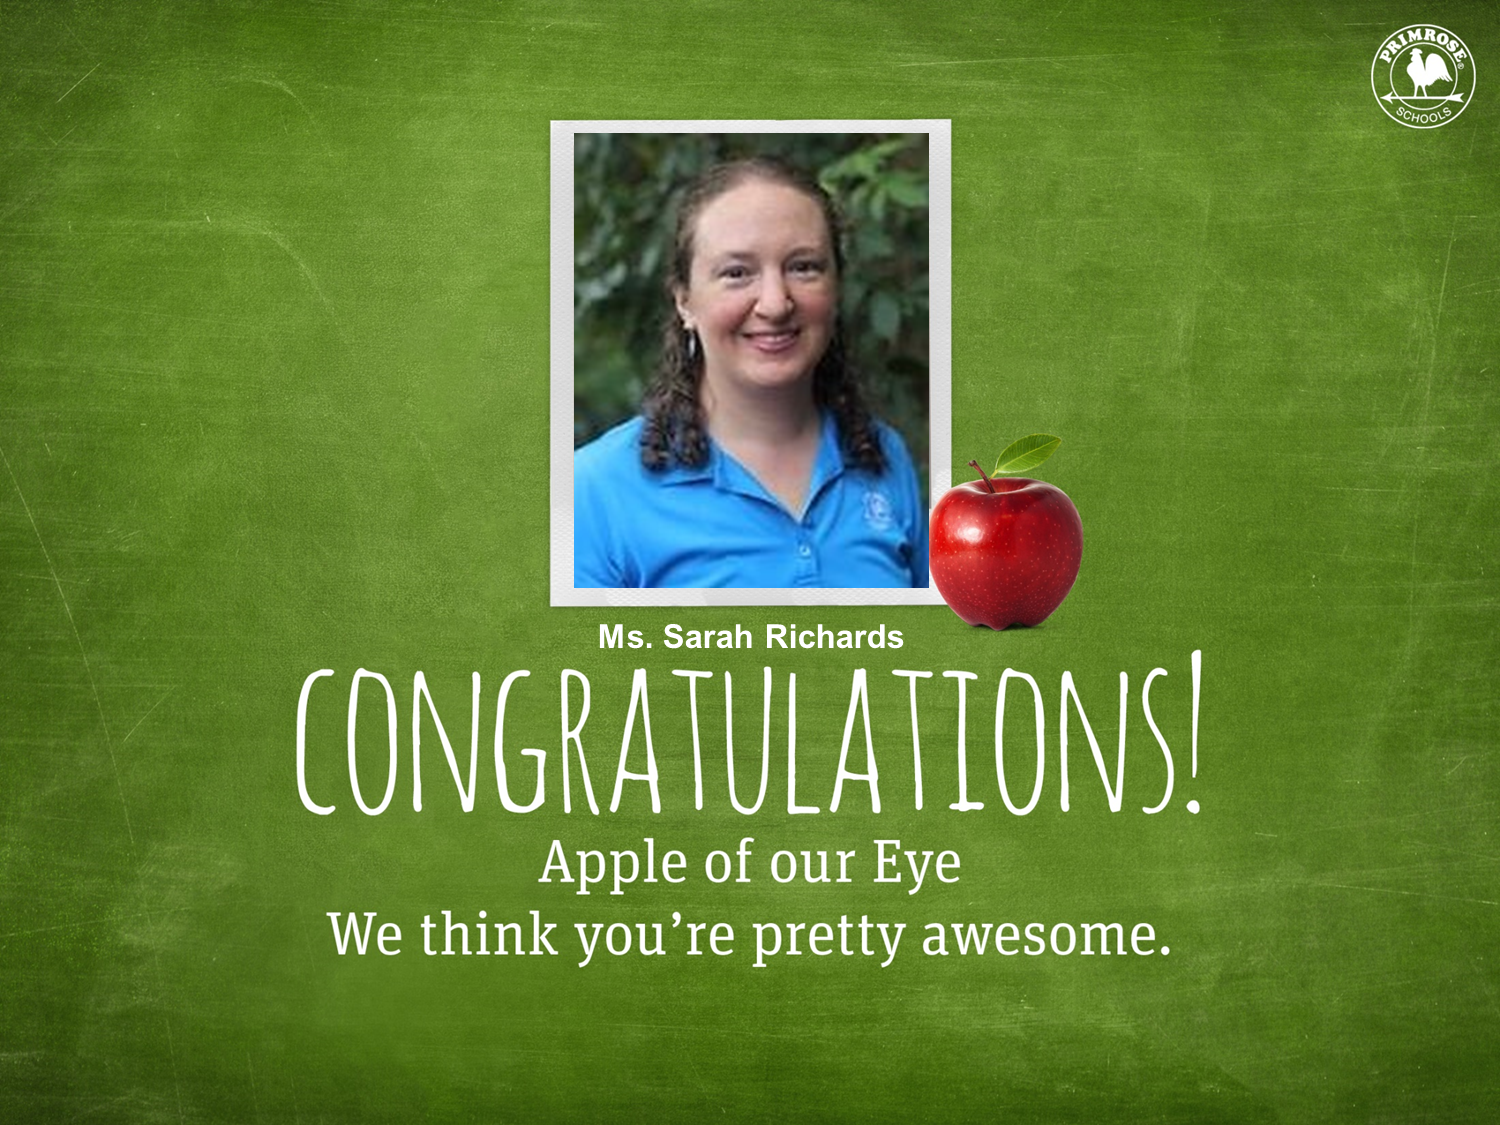 Ms. Sarah Richards as the January Apple of Our Eye